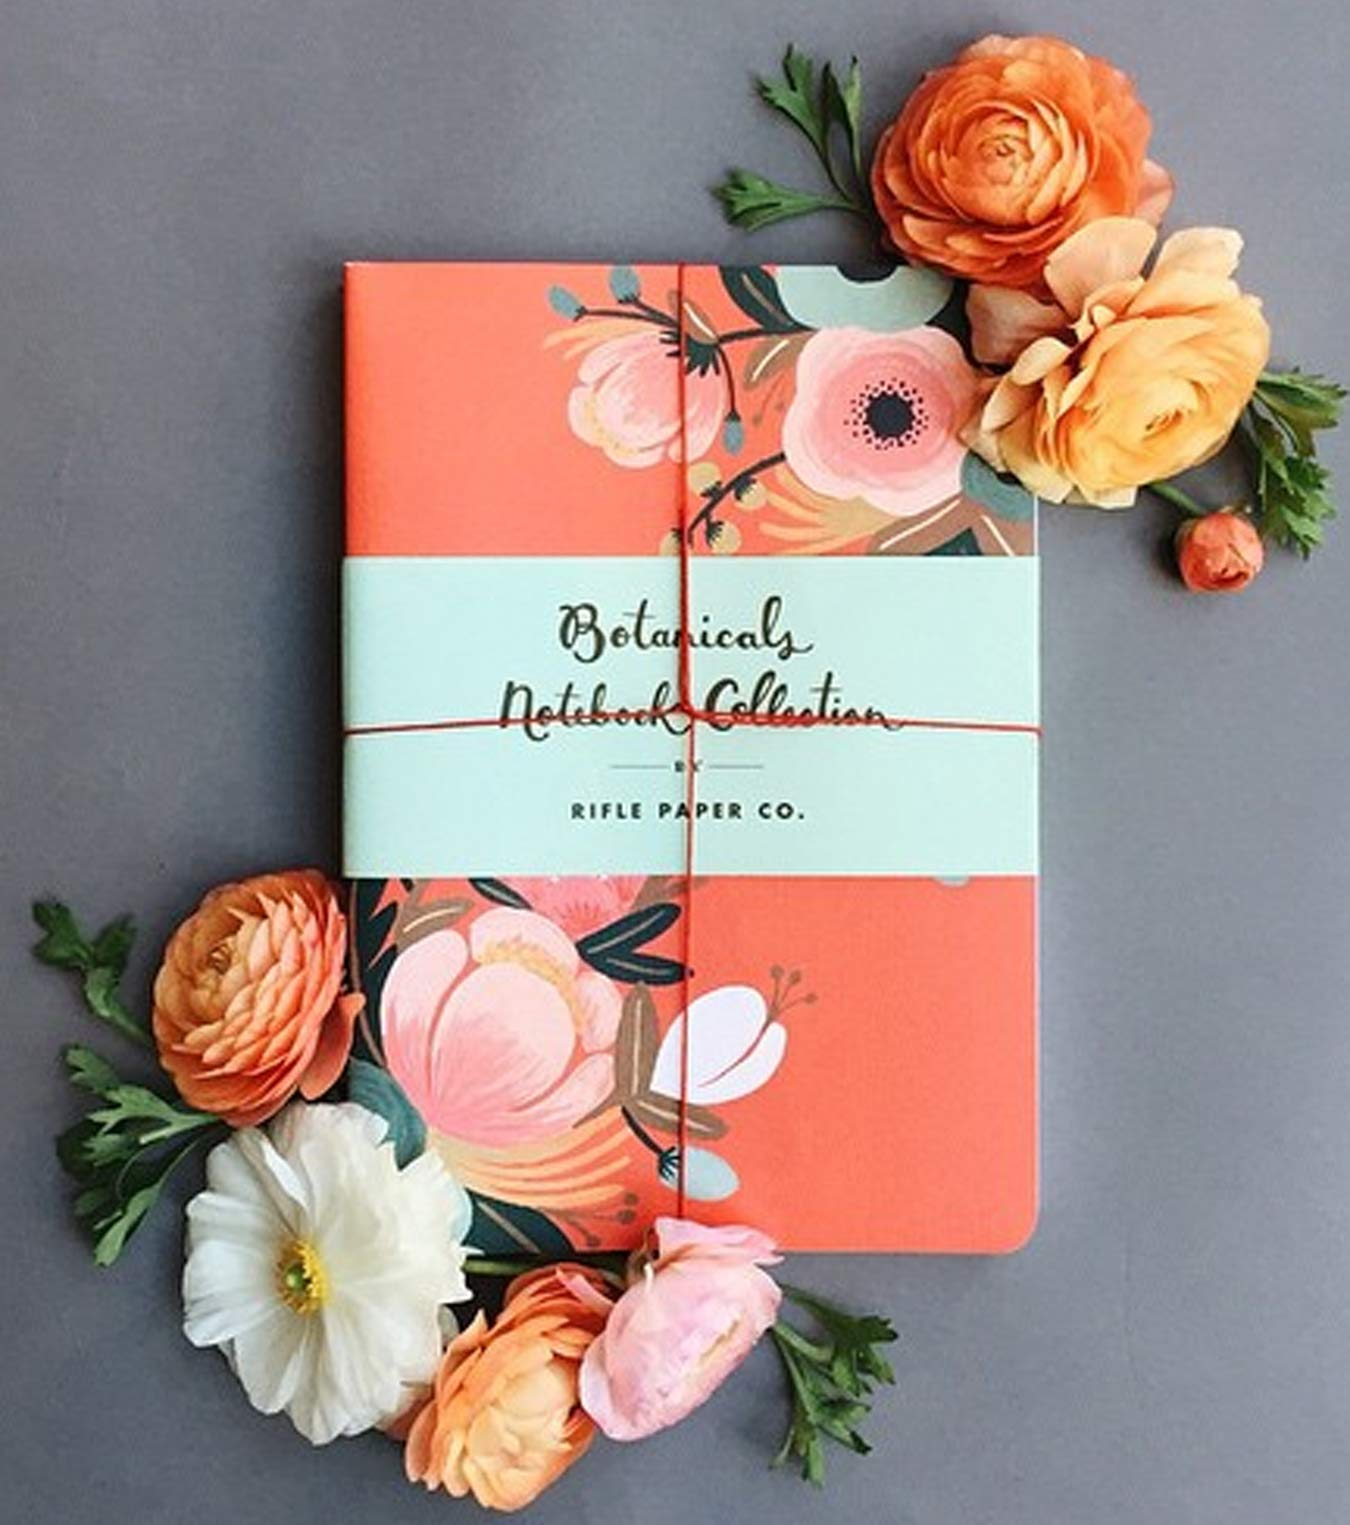 Botanicals Notebook Collection: Amazon.es: Rifle Paper Co ...